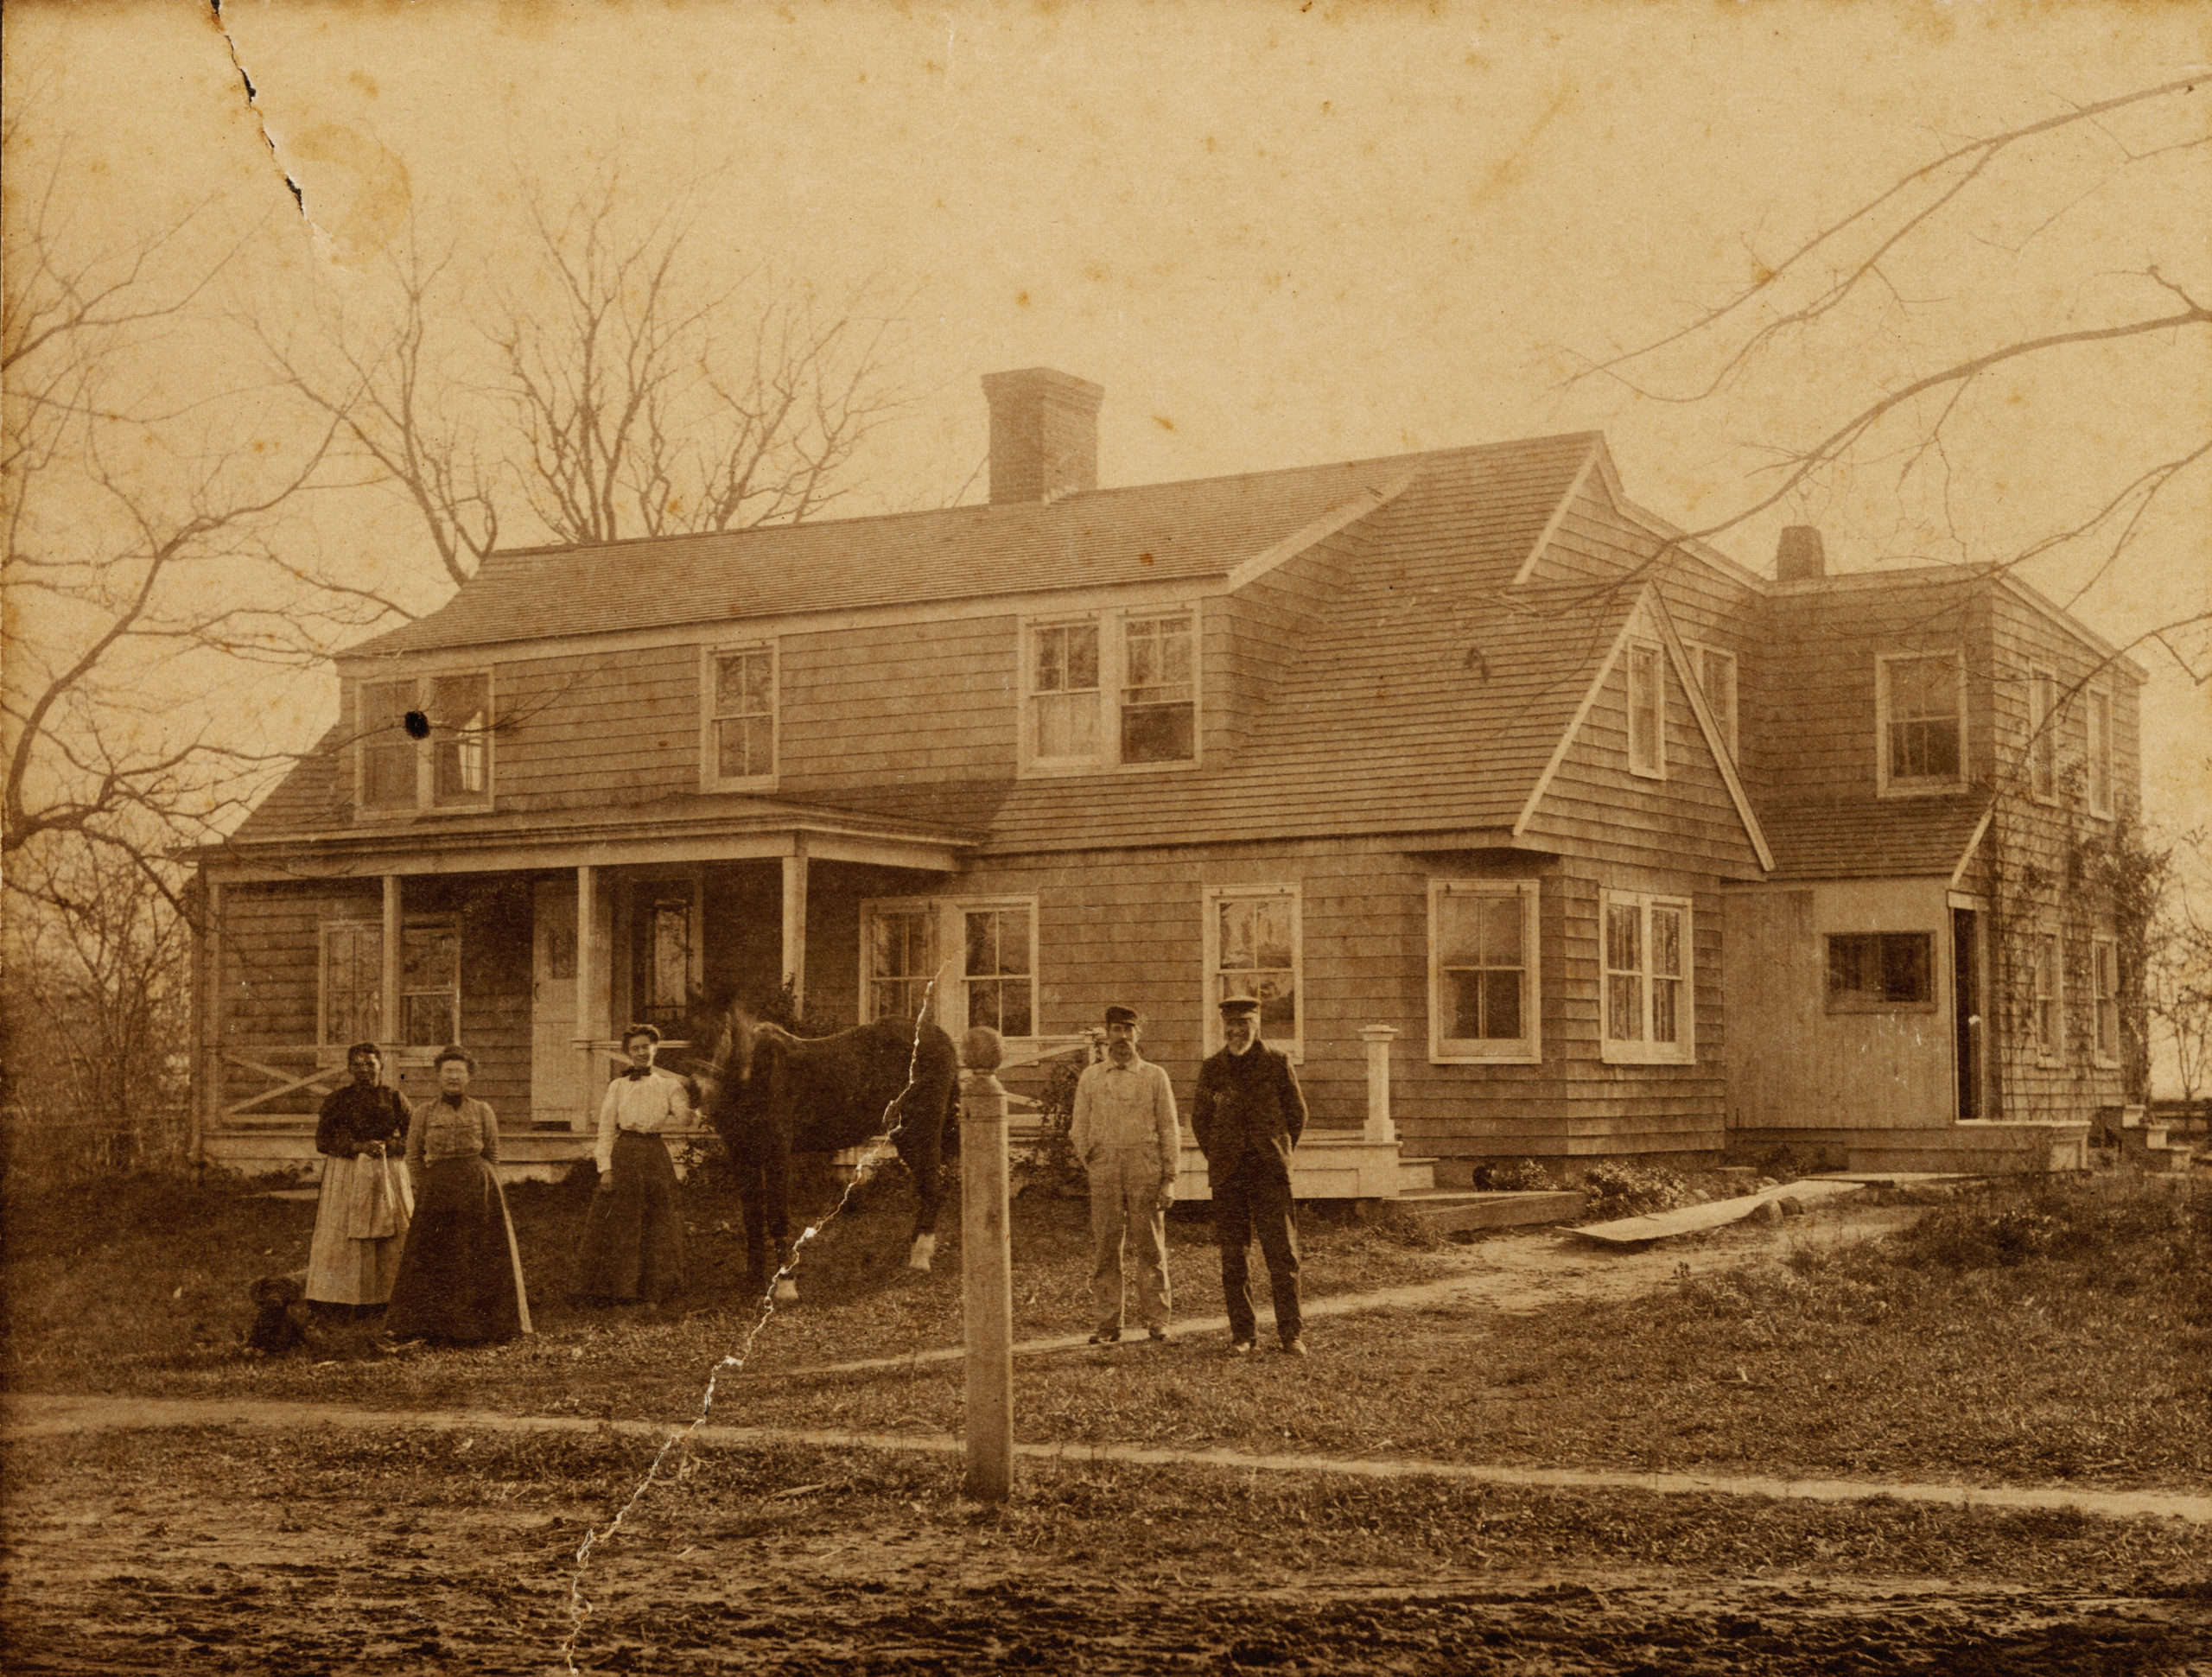 A circa 1875 photograph of the Hopping family in Wainscott. One of the very few local 19th century images of a person of color.